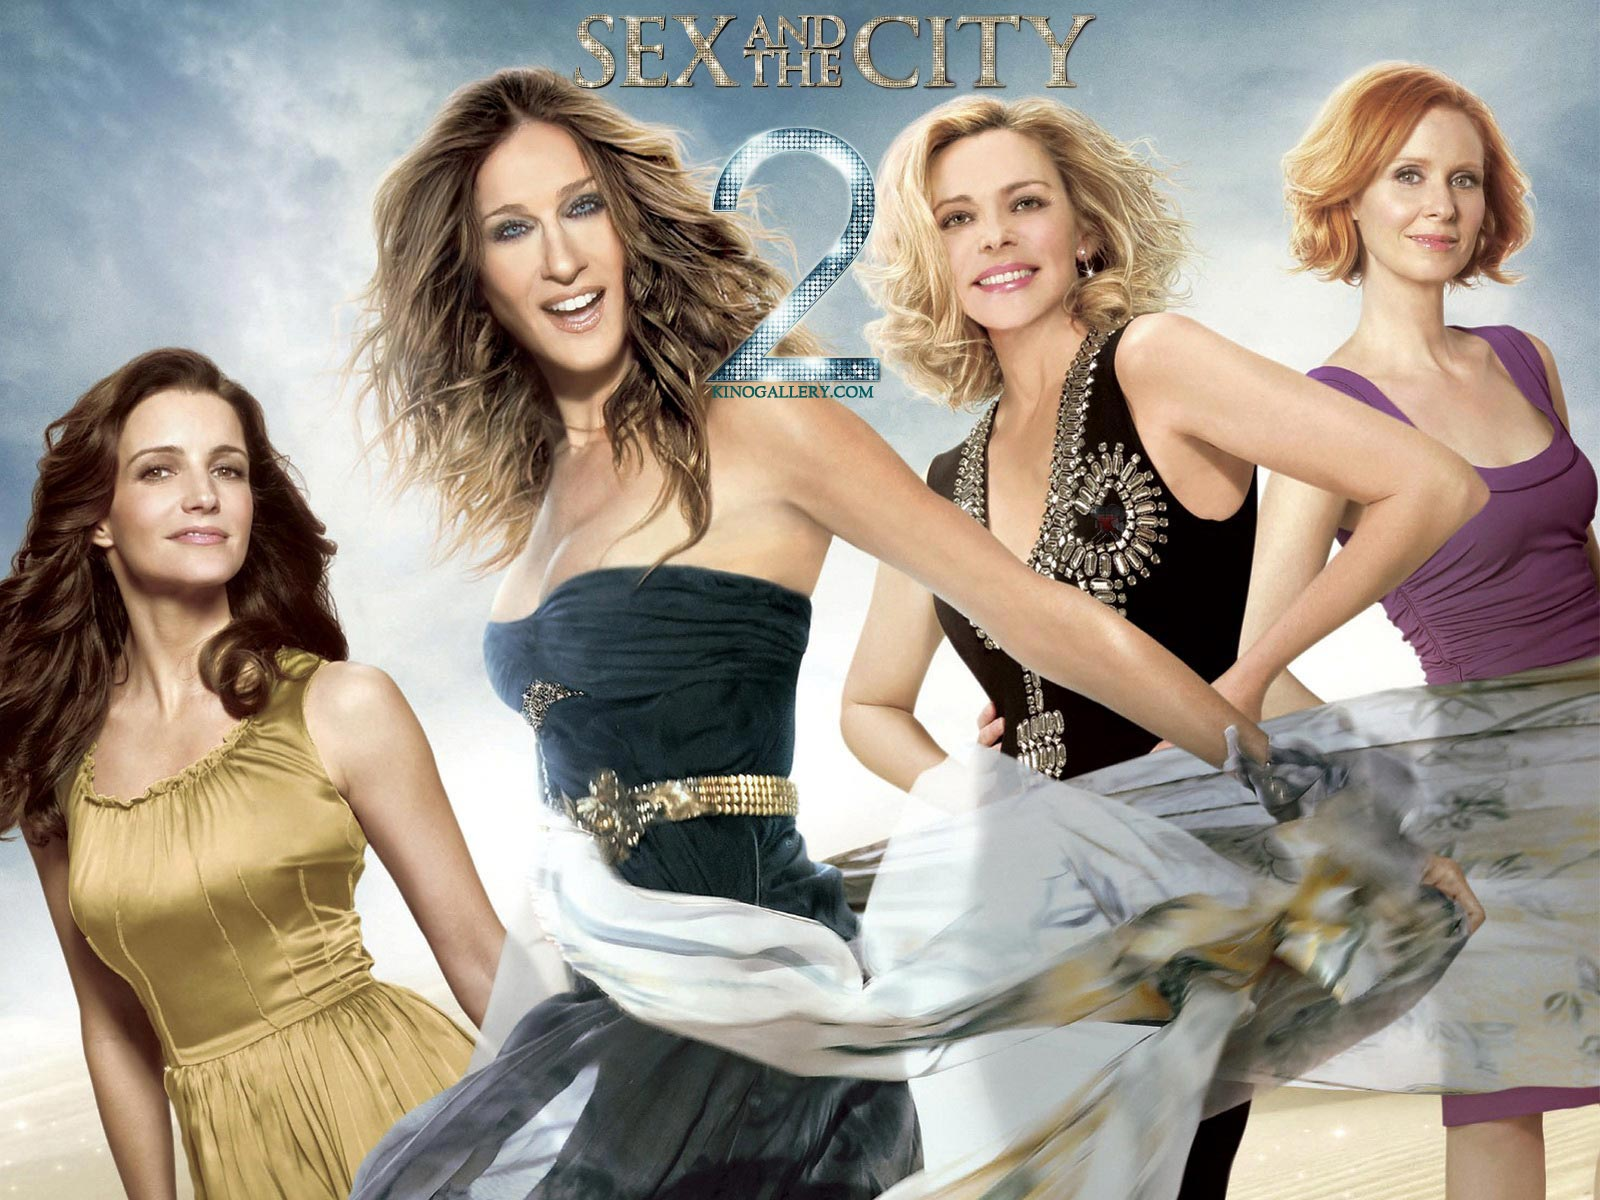 sex and the city 2 storyline